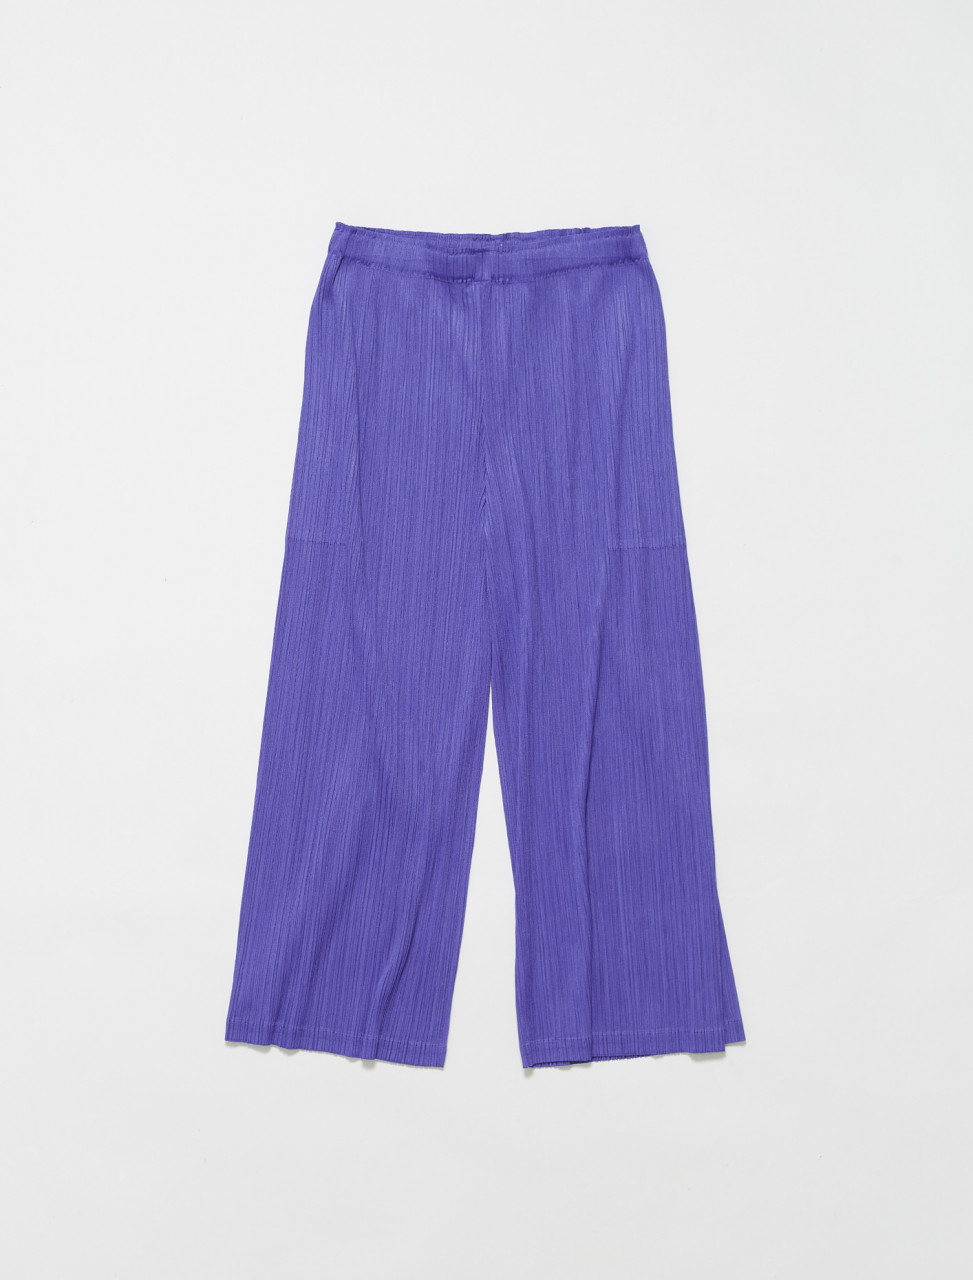 PP16JF553-81 ISSEY MIYAKE PLEATS PLEASE PLEATED TROUSER PURPLE